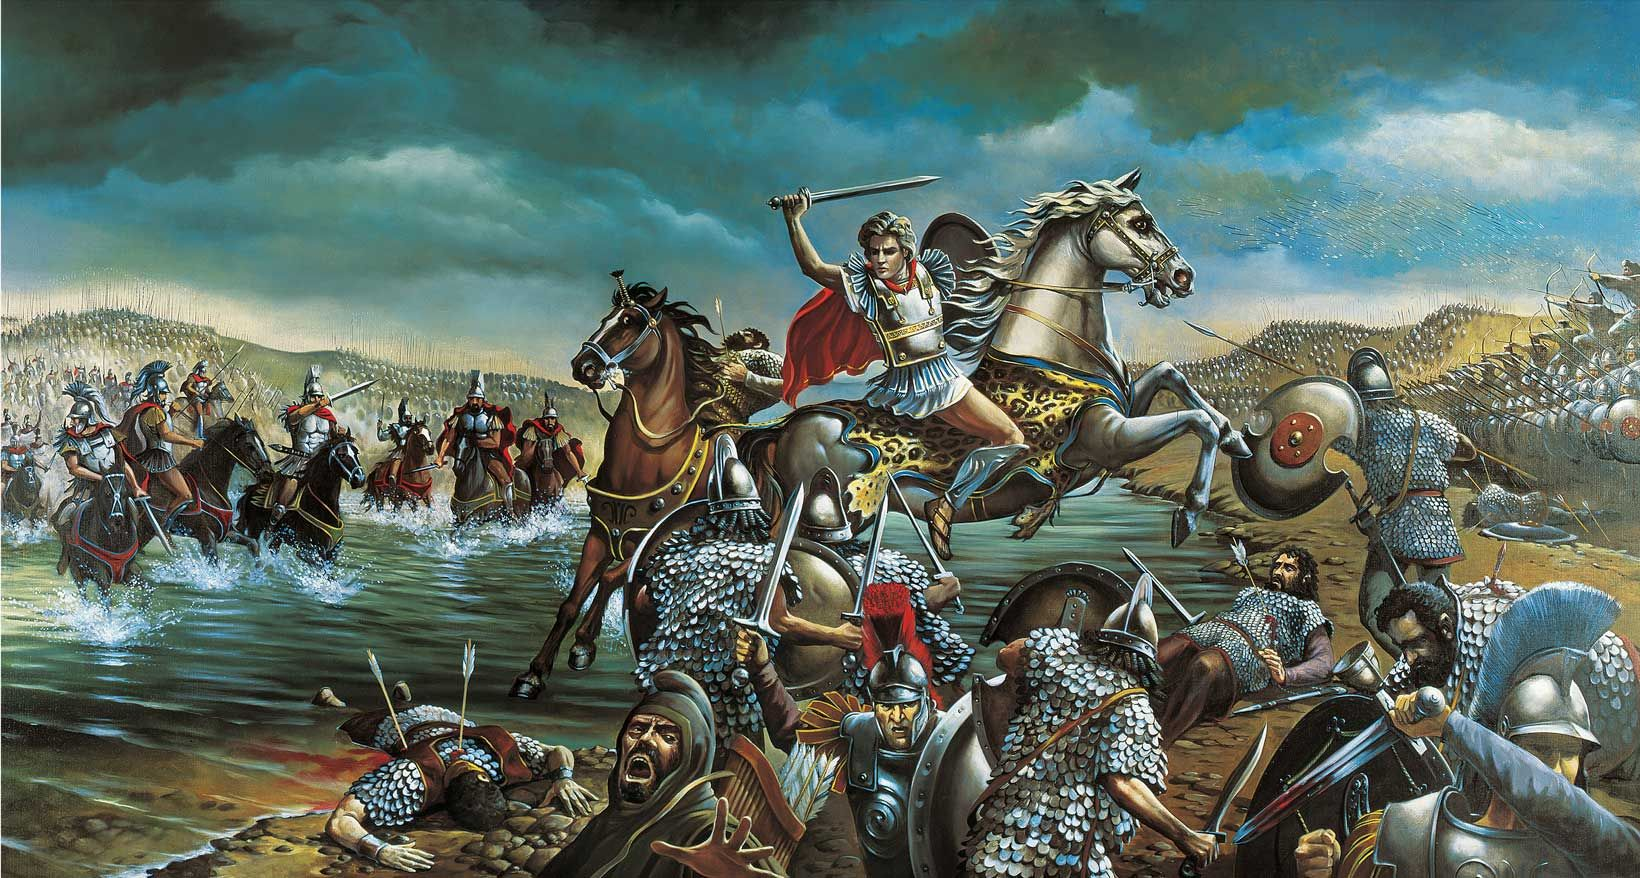 Alexander the great at the battle of granicus river ancient war alexander the great at the battle of granicus river kristyandbryce Choice Image